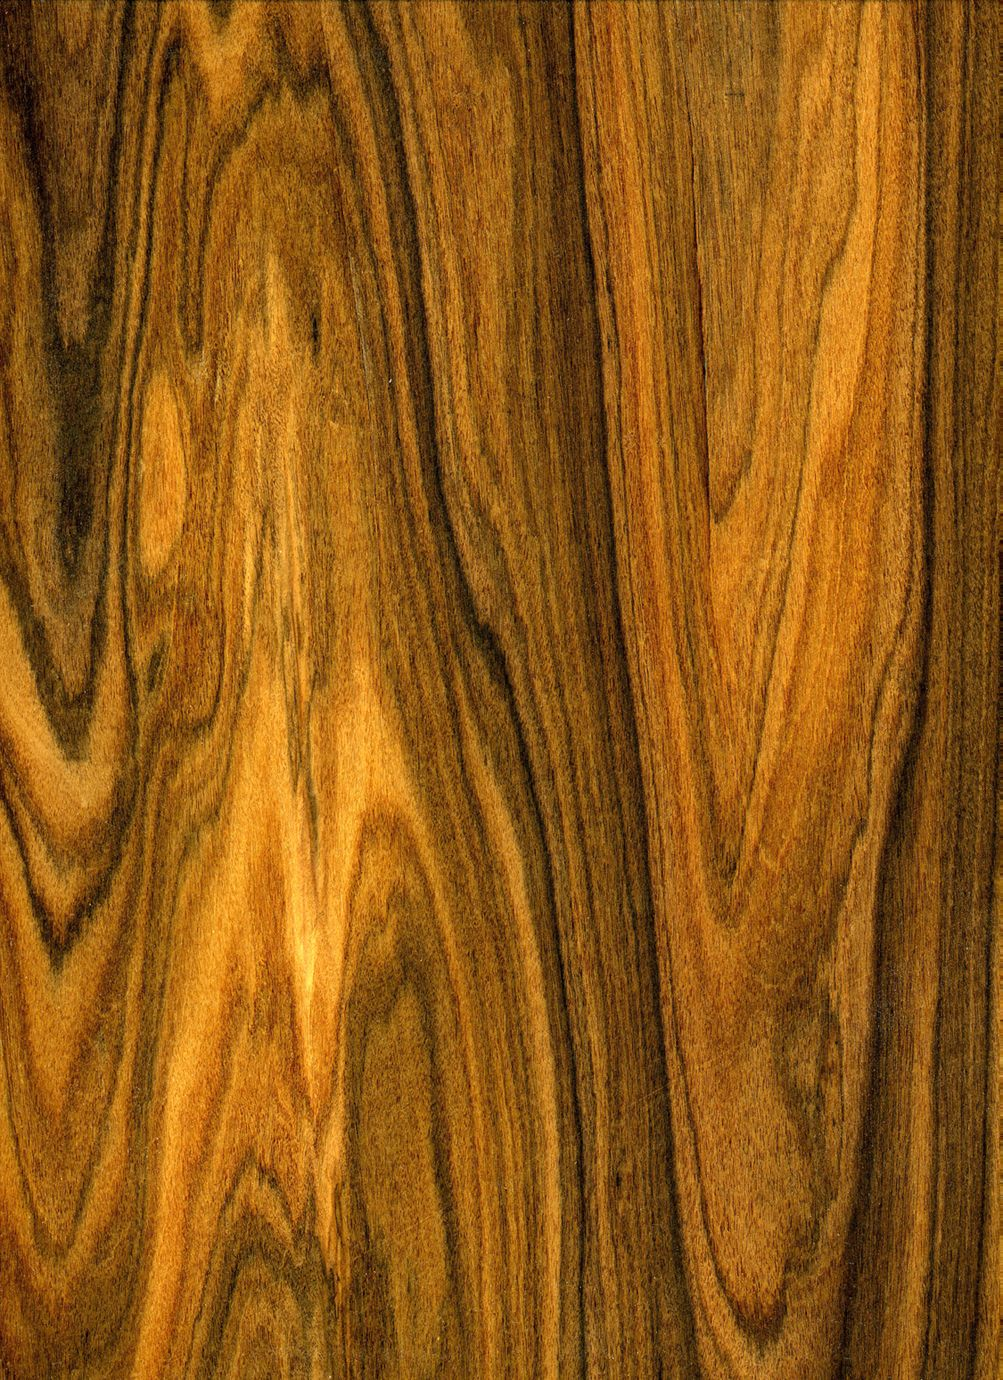 Exotic lumber inc stocks over species of exotic wood and